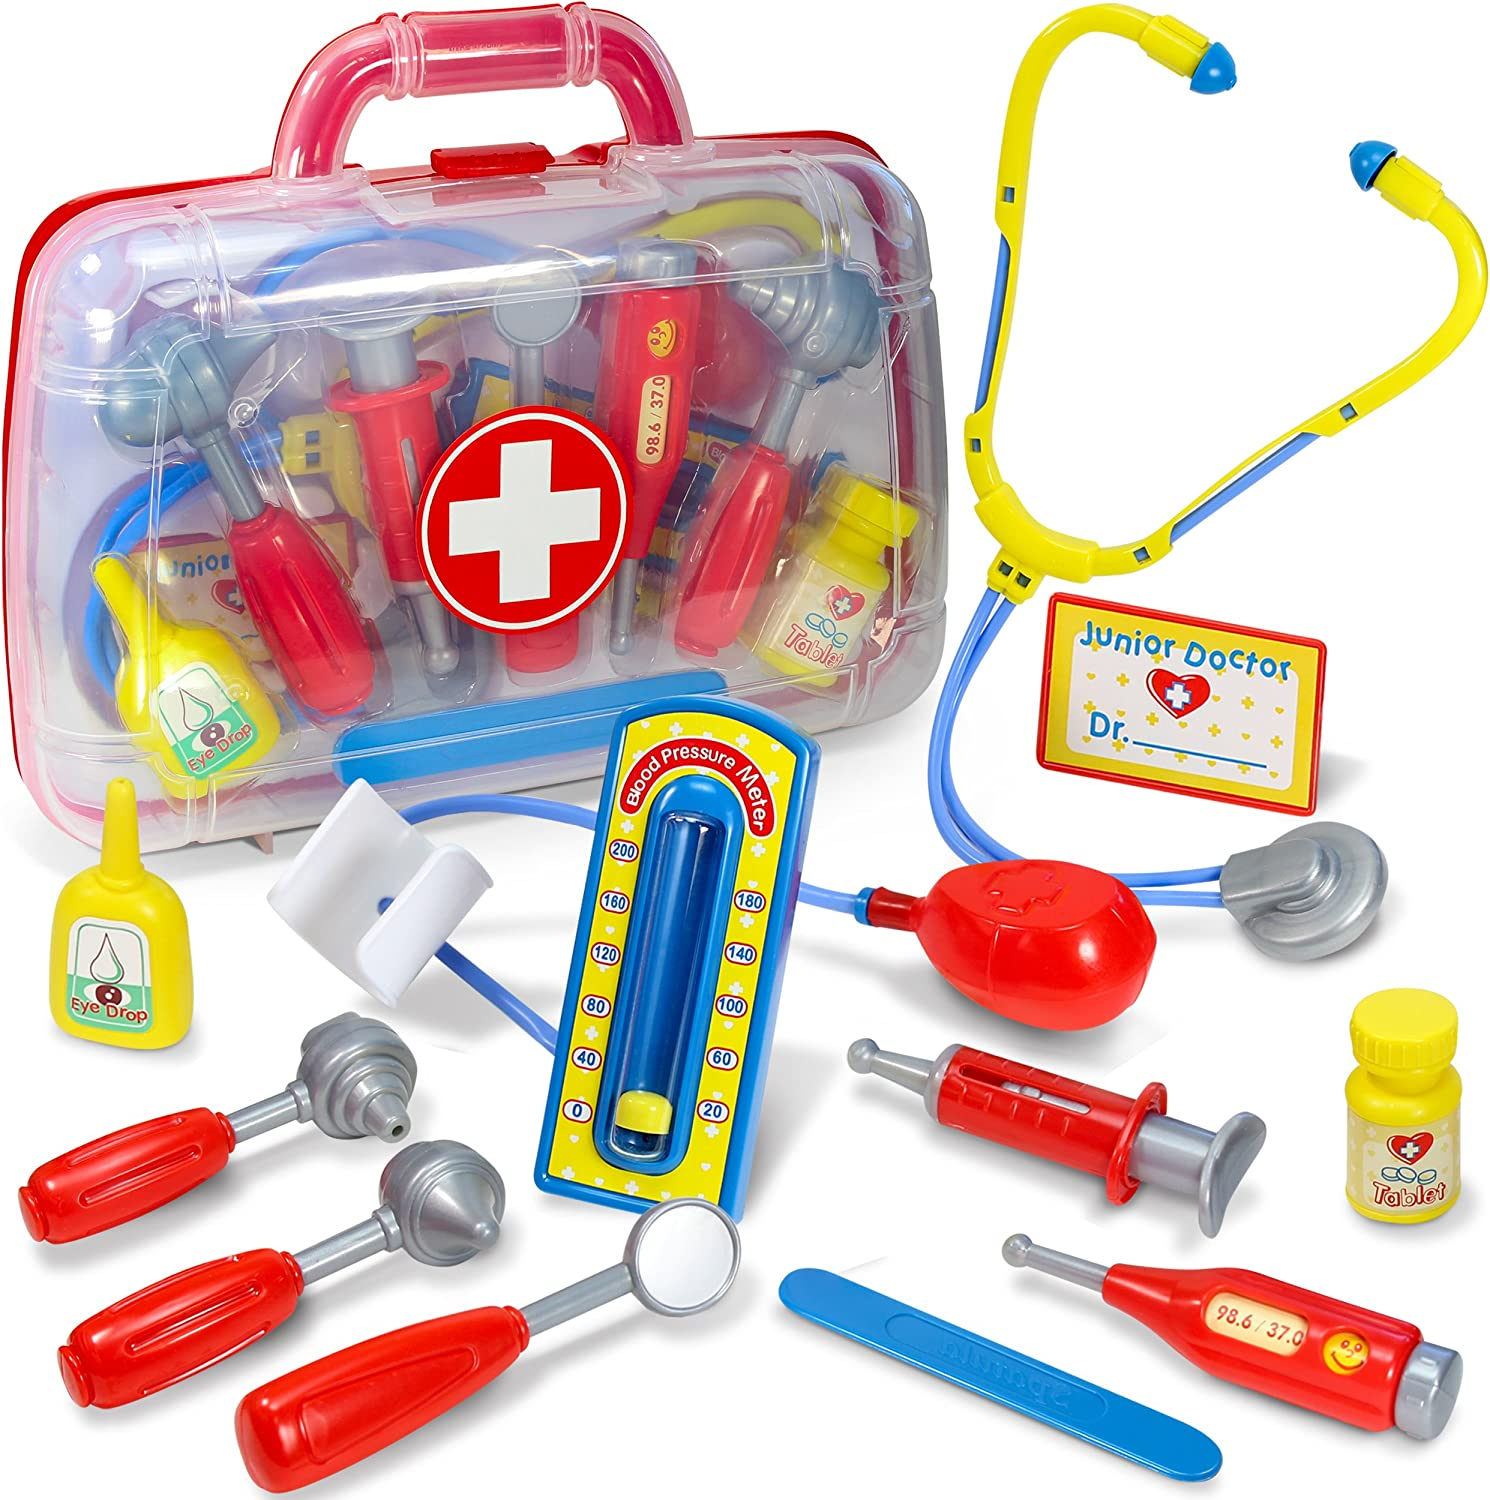 Top 12 Best Toy Doctor Kits (2020 Reviews & Buying Guide) 8